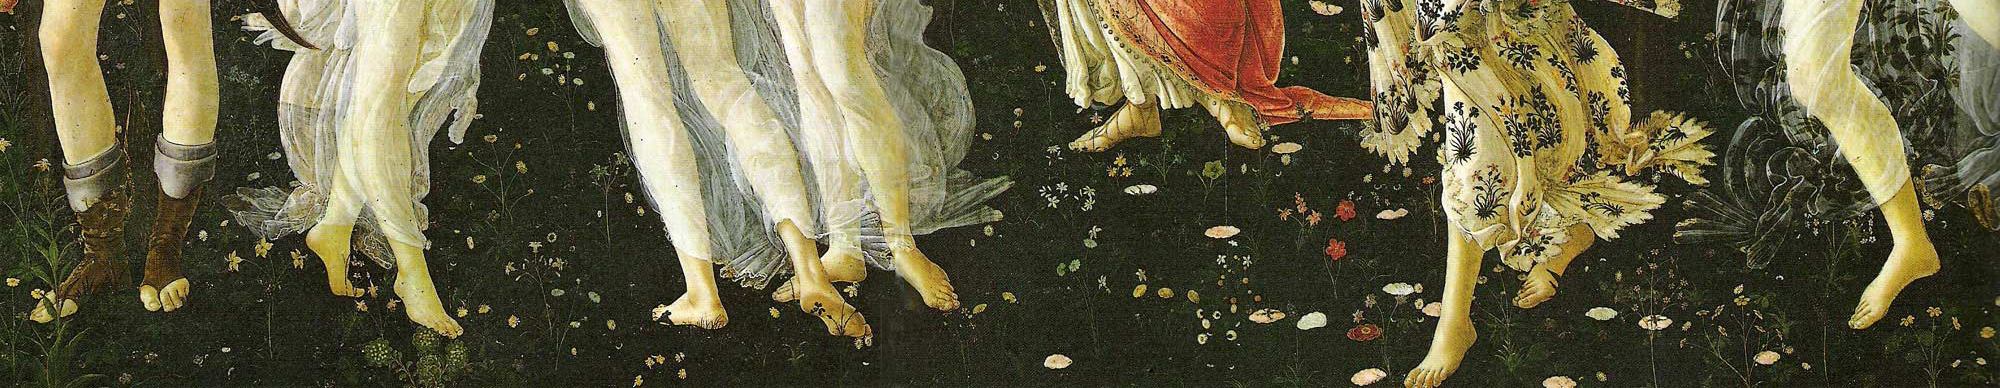 botticelli-primavera-flowers-feet-fs